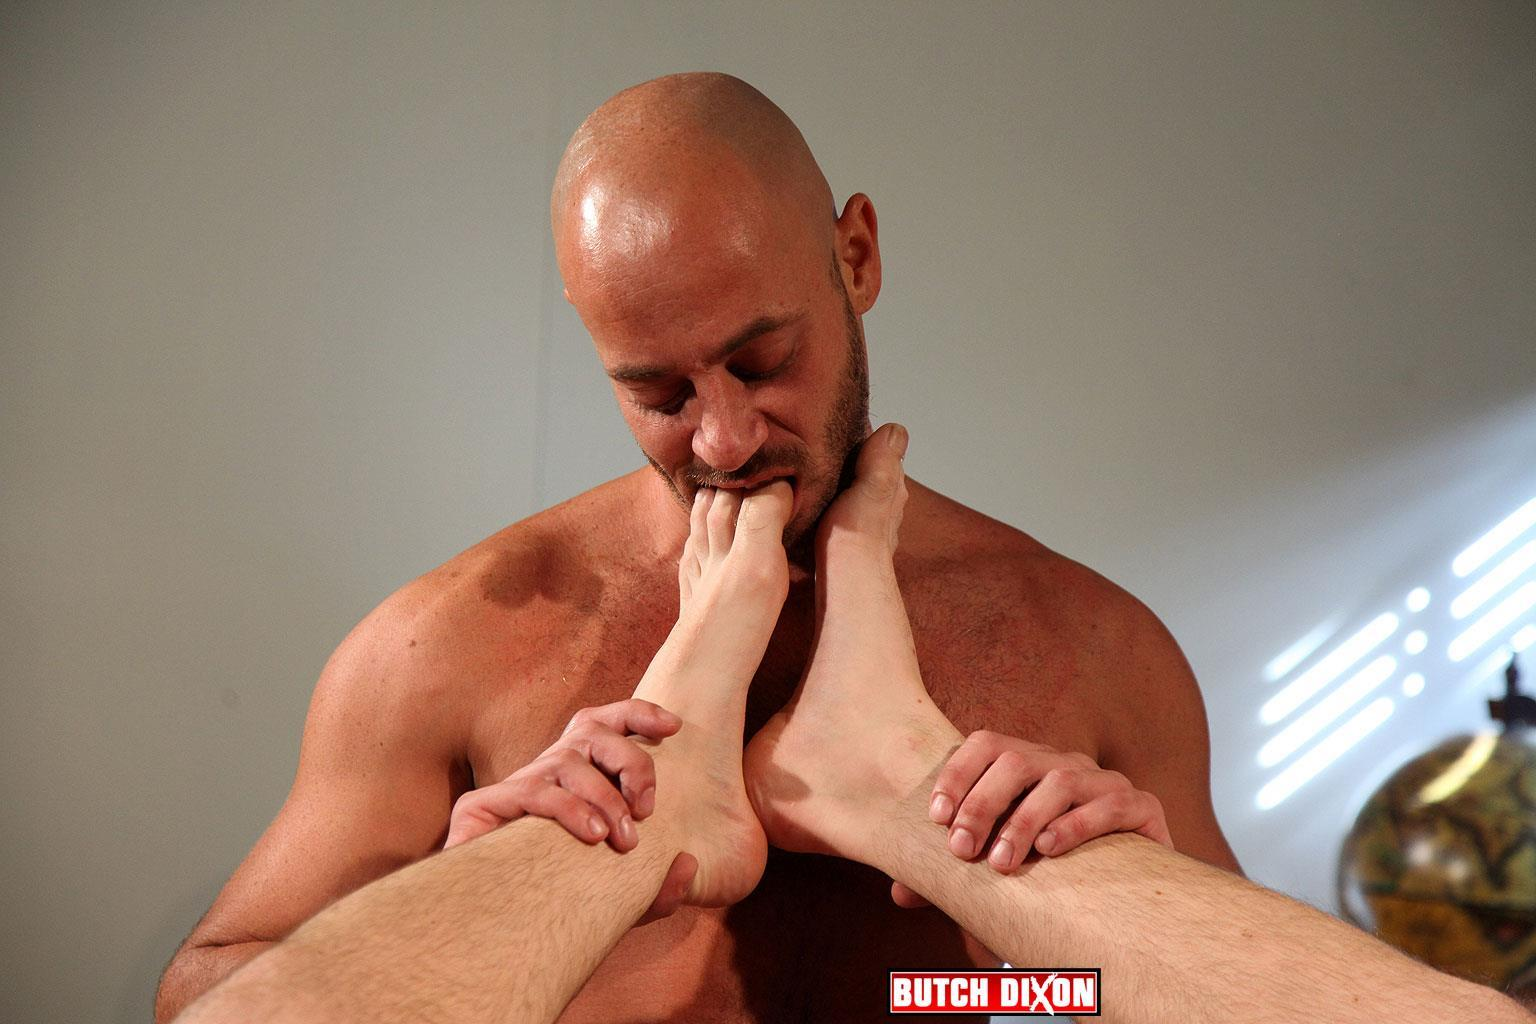 Butch-Dixon-Alfie-Stone-and-Bruno-Fox-Big-Cock-Masculine-Gays-Fucking-Amateur-Gay-Porn-09 Freaky Amateur Hairy Masculine Men Fucking With Thick Cocks